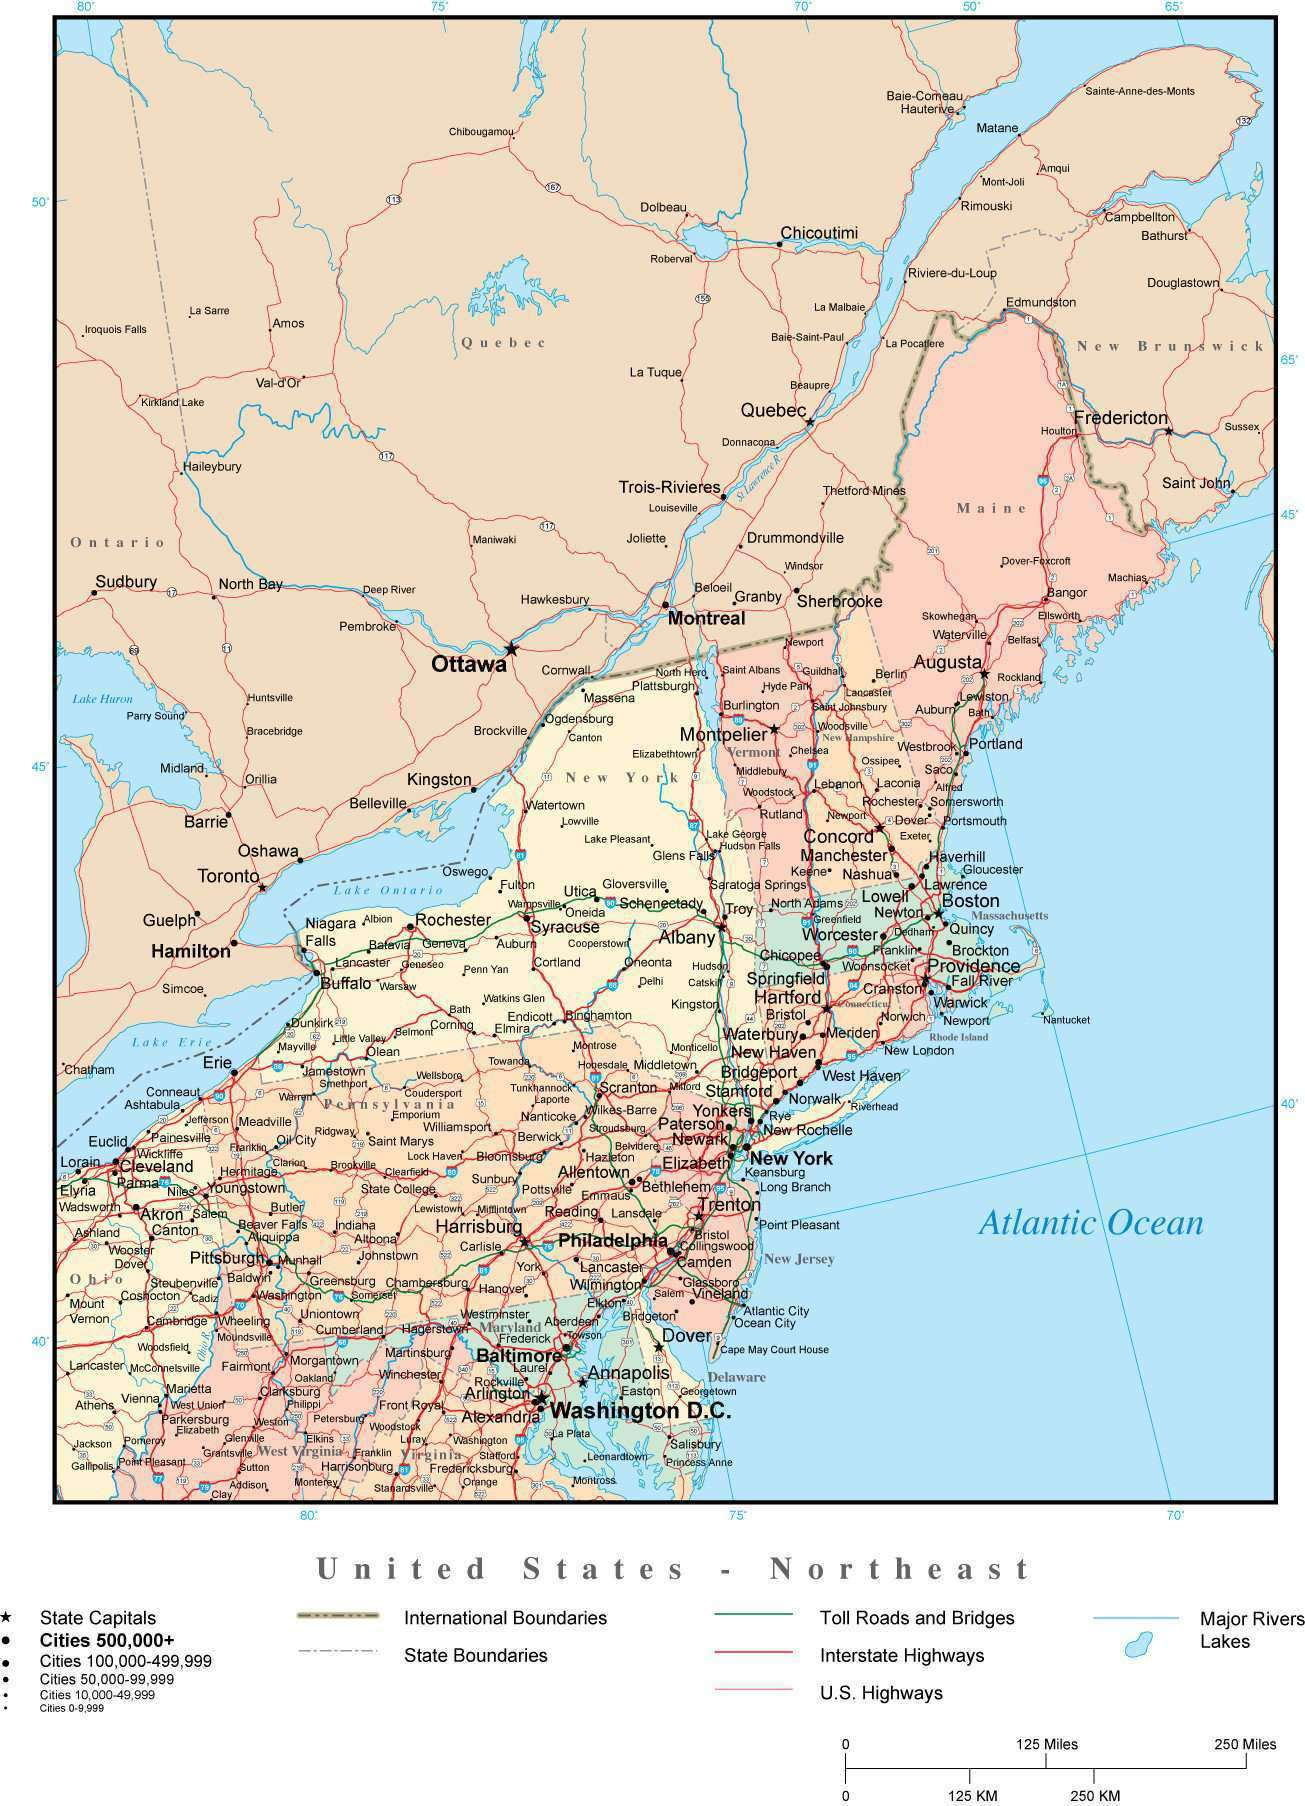 Picture of: Usa Northeast Region Map With State Boundaries Highways And Cities